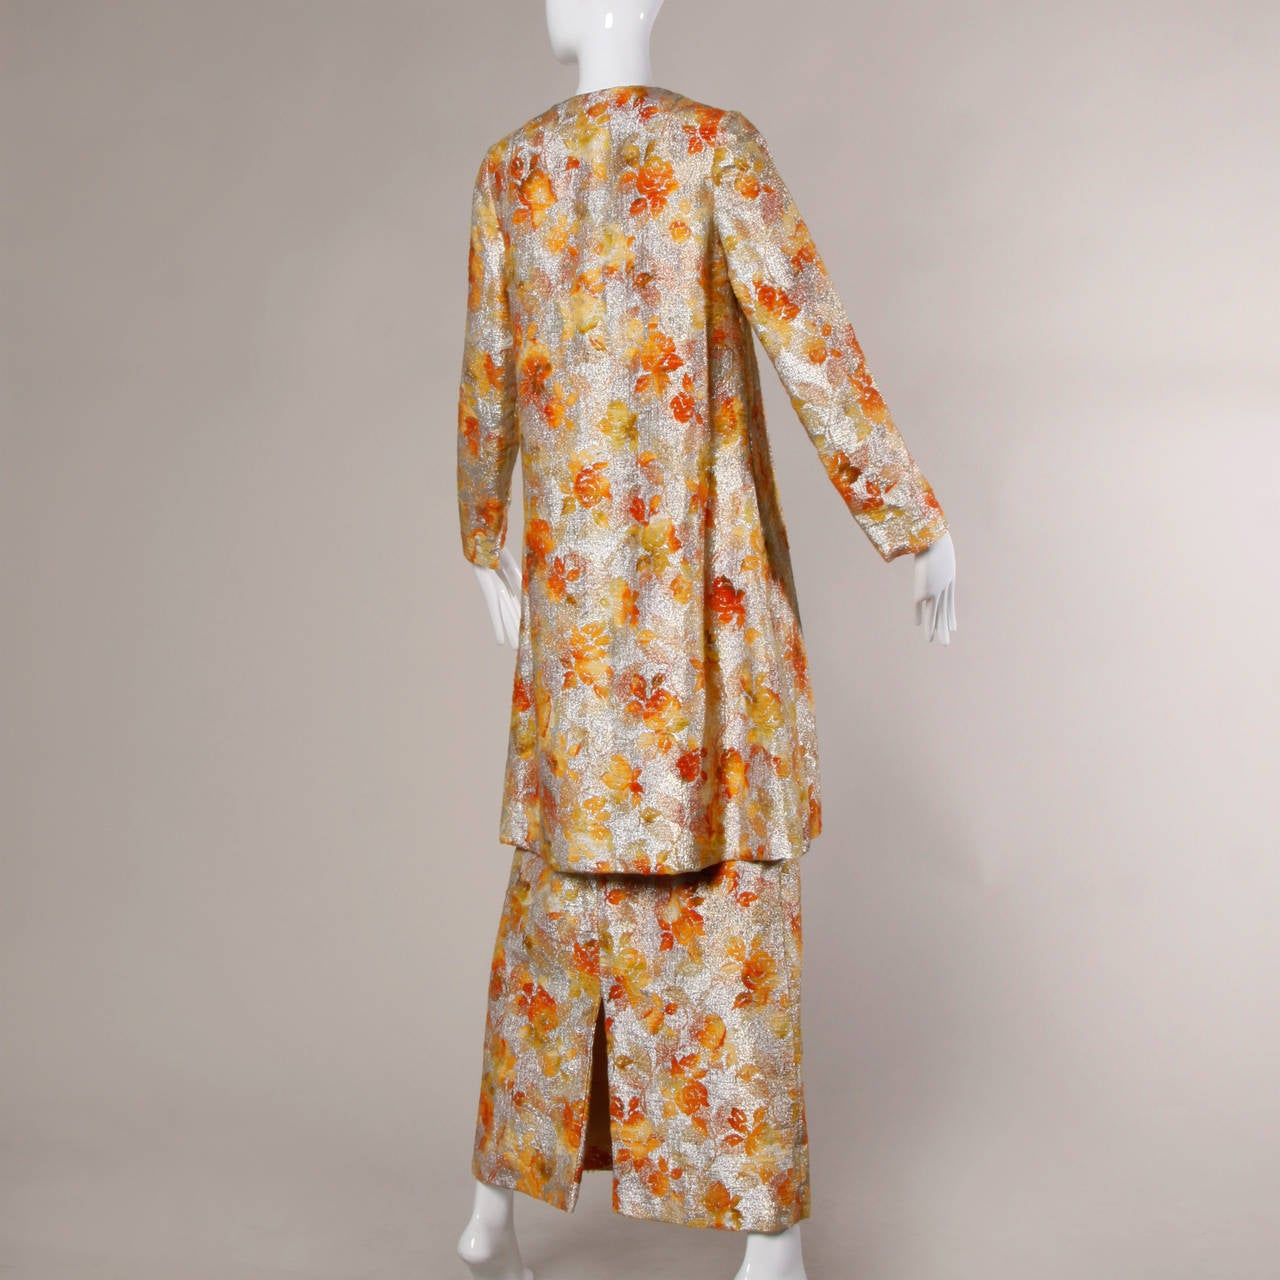 1960s Vintage Metallic Brocade Ombre Coat 4